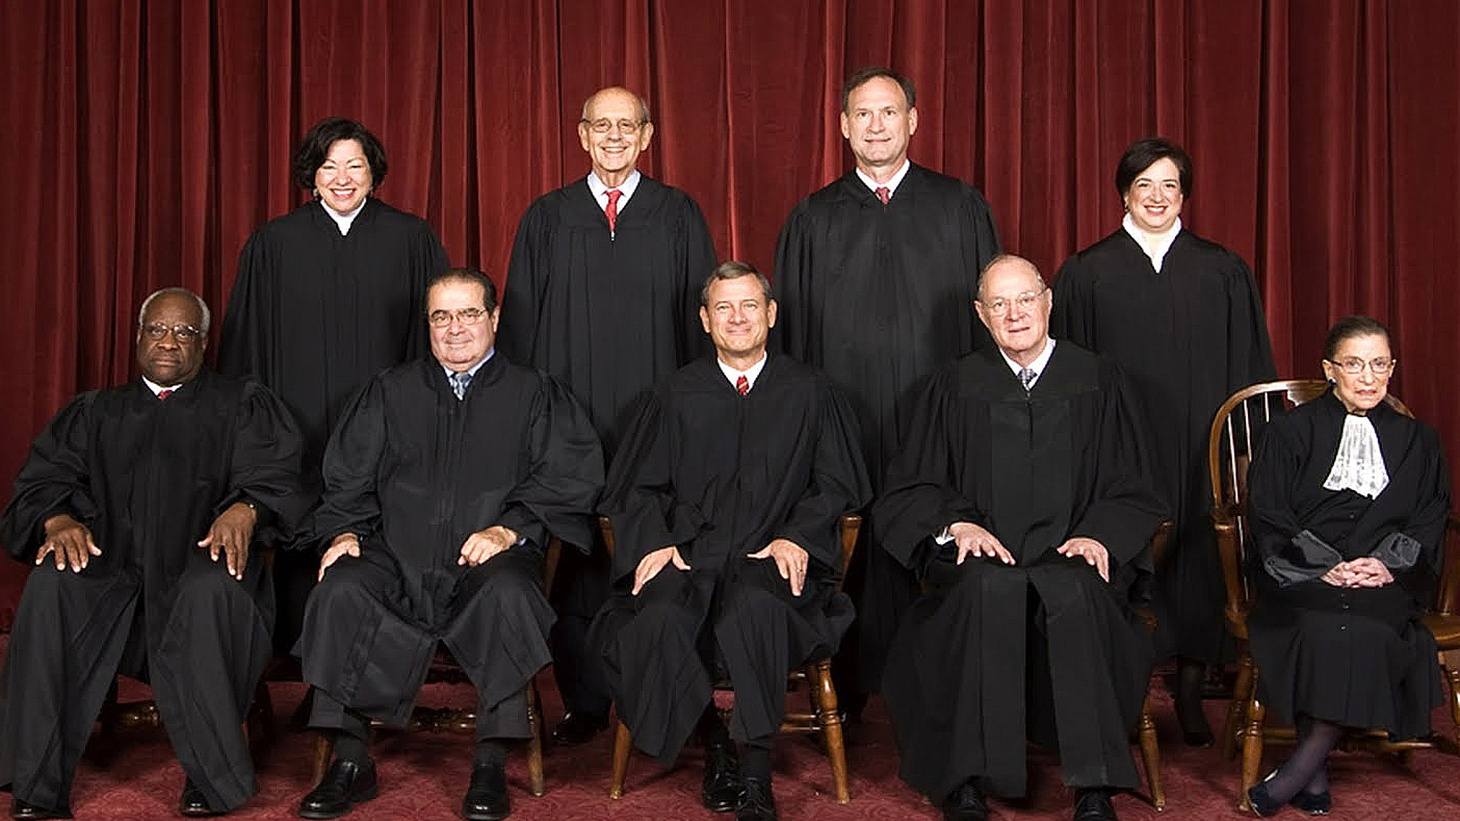 The Supreme Court's big decisions on cell phones, recess appointments and abortion buffer zones. Supporting Syrian rebels and the Ukraine.